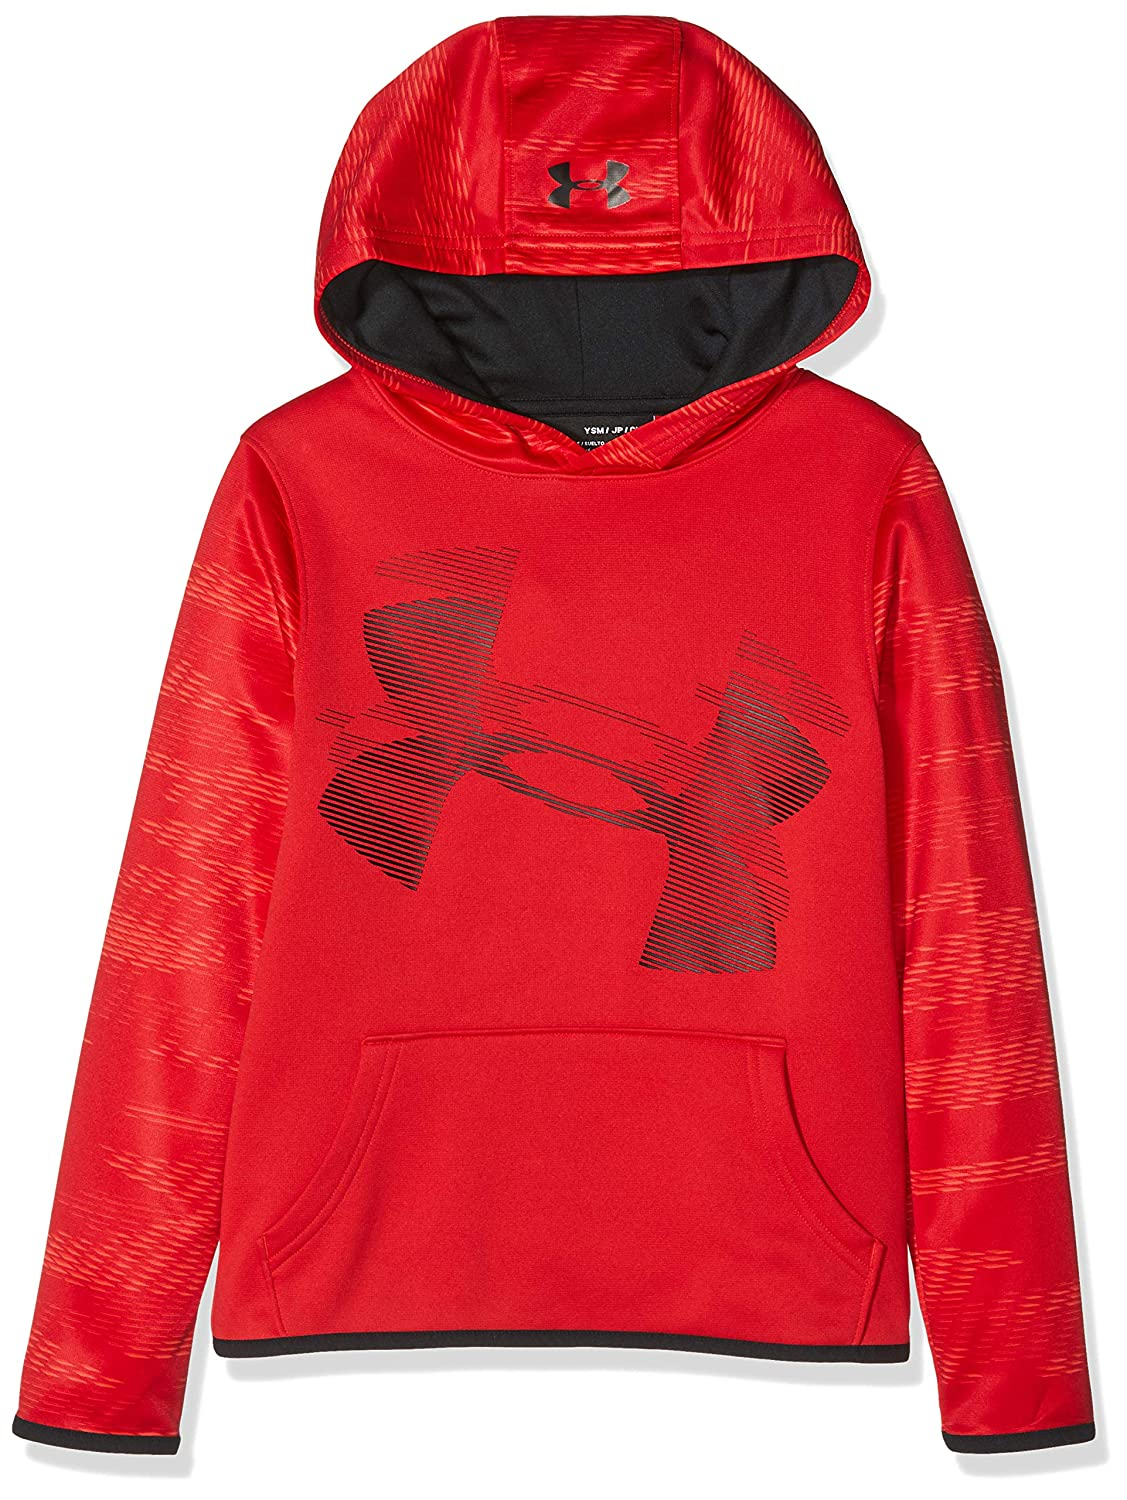 Youth Small Under Armour Boys Fleece Hoody Warm-up Top Red//Black